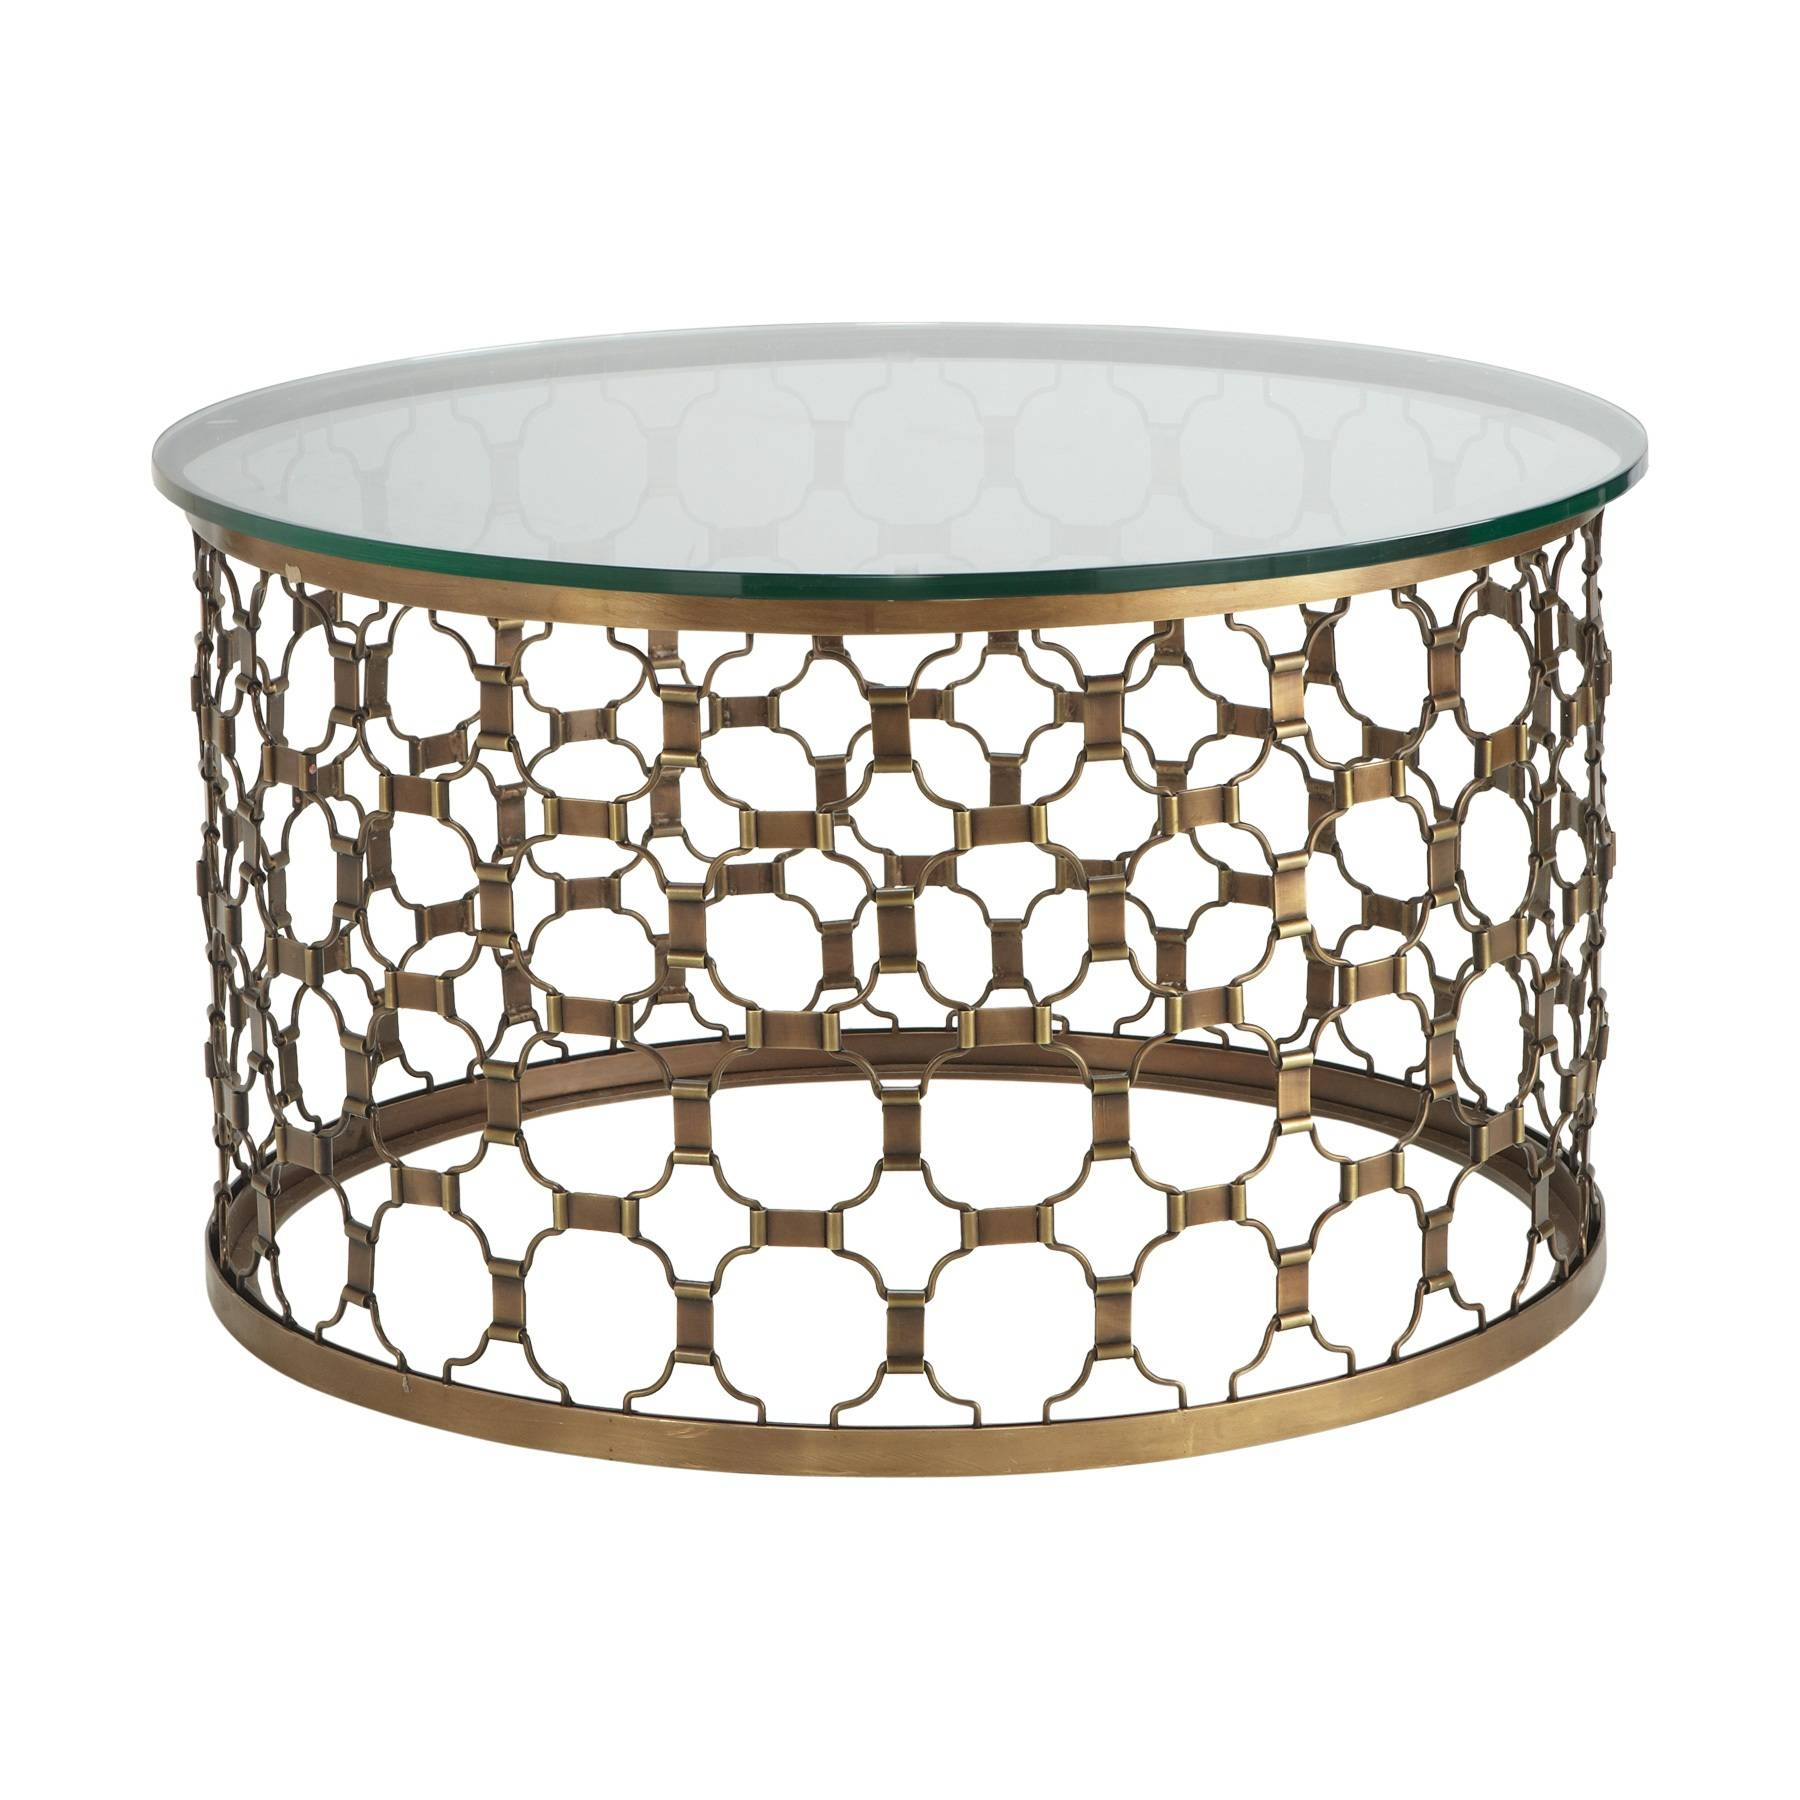 Nice Metal Round Coffee Tables For Home Interior Designing With for Round Metal Coffee Tables (Image 8 of 15)